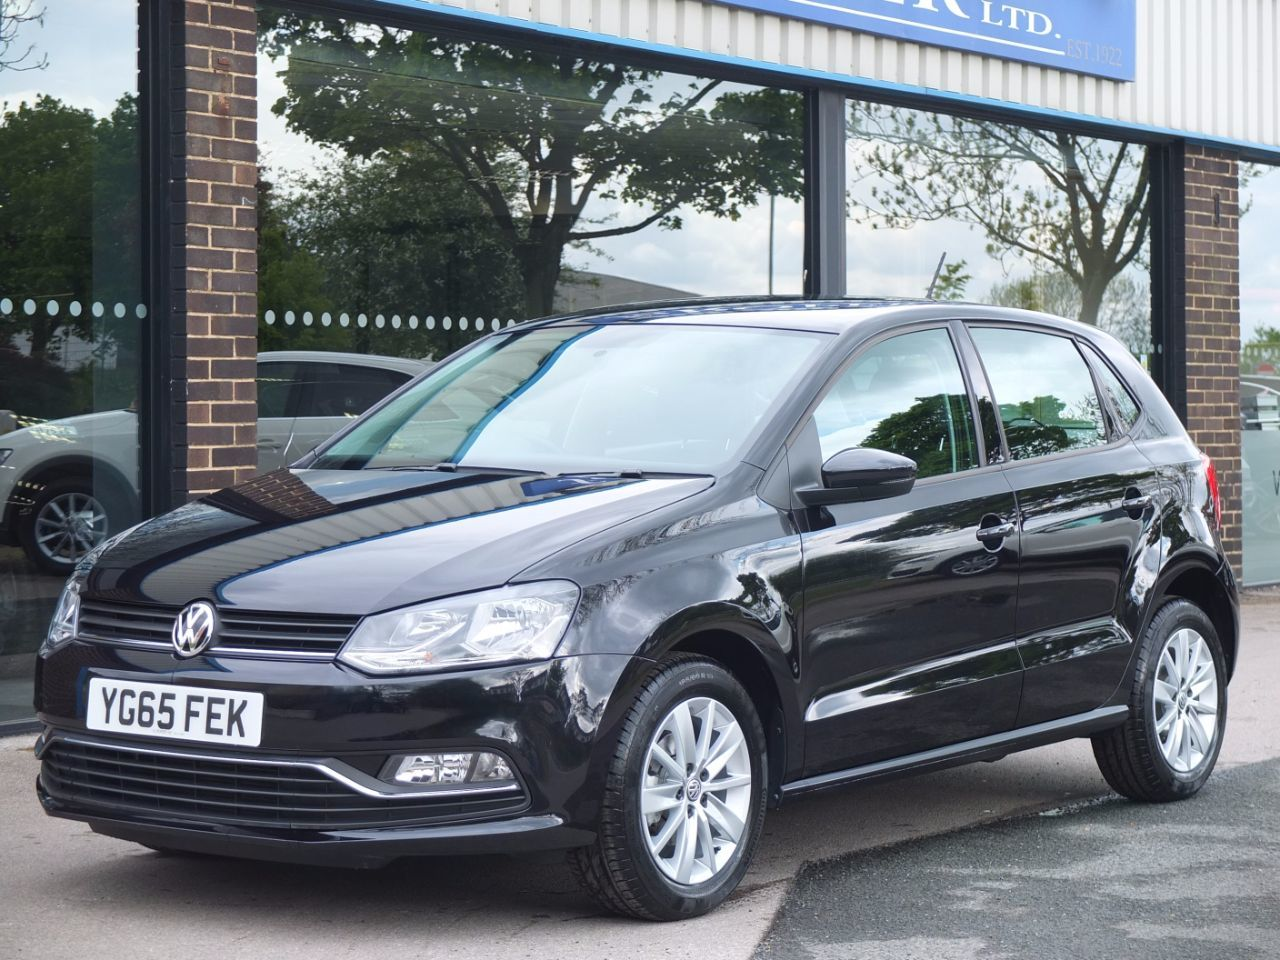 Volkswagen Polo 1.2 TSI Bluemotion Tech SE 5 door Hatchback Petrol Deep Black MetallicVolkswagen Polo 1.2 TSI Bluemotion Tech SE 5 door Hatchback Petrol Deep Black Metallic at fa Roper Ltd Bradford